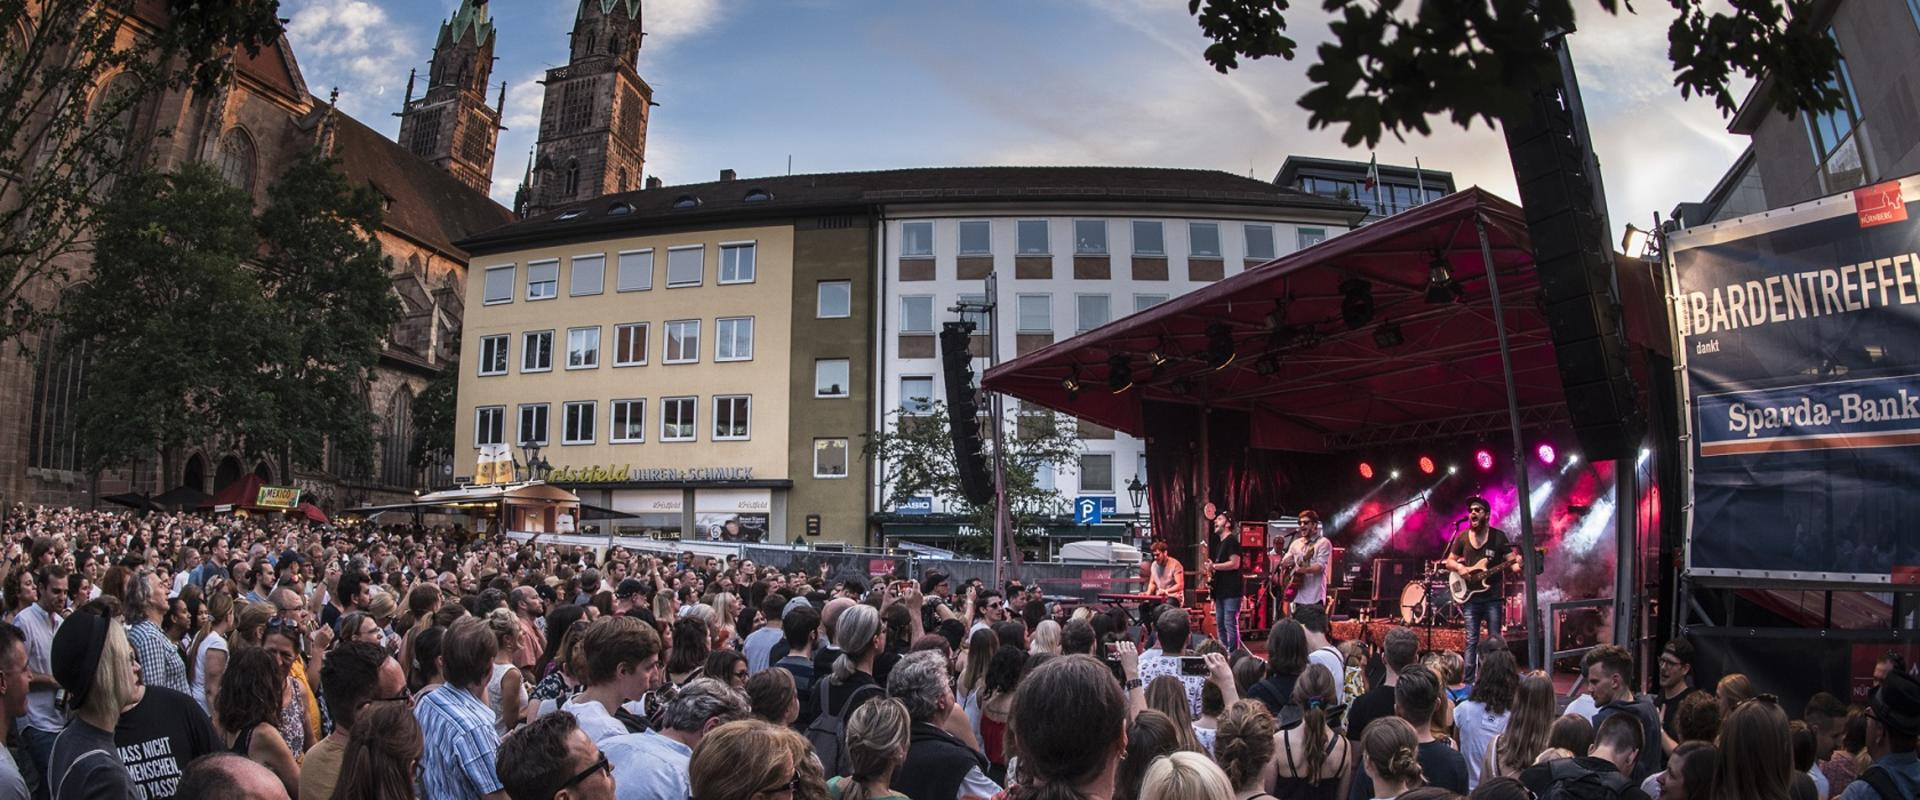 Start des Sparda-Band-Votings – Bardentreffen 2019